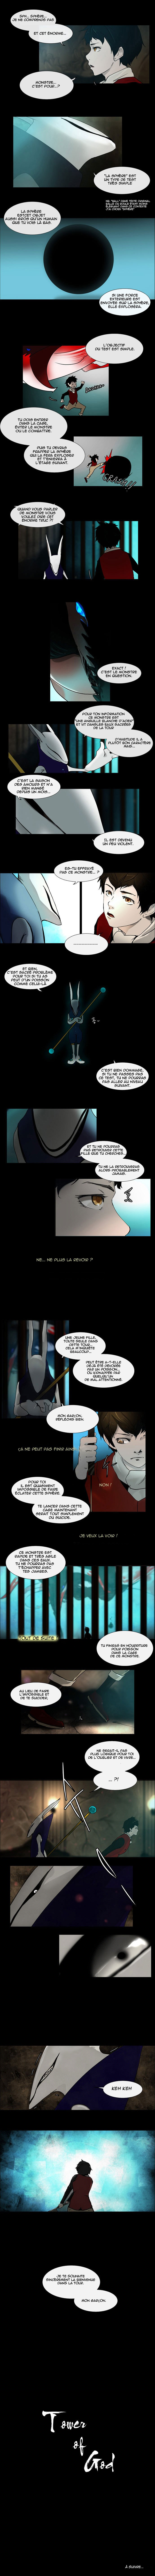 Tower of God - Chapitre 1 - L'étage d'Headon #6